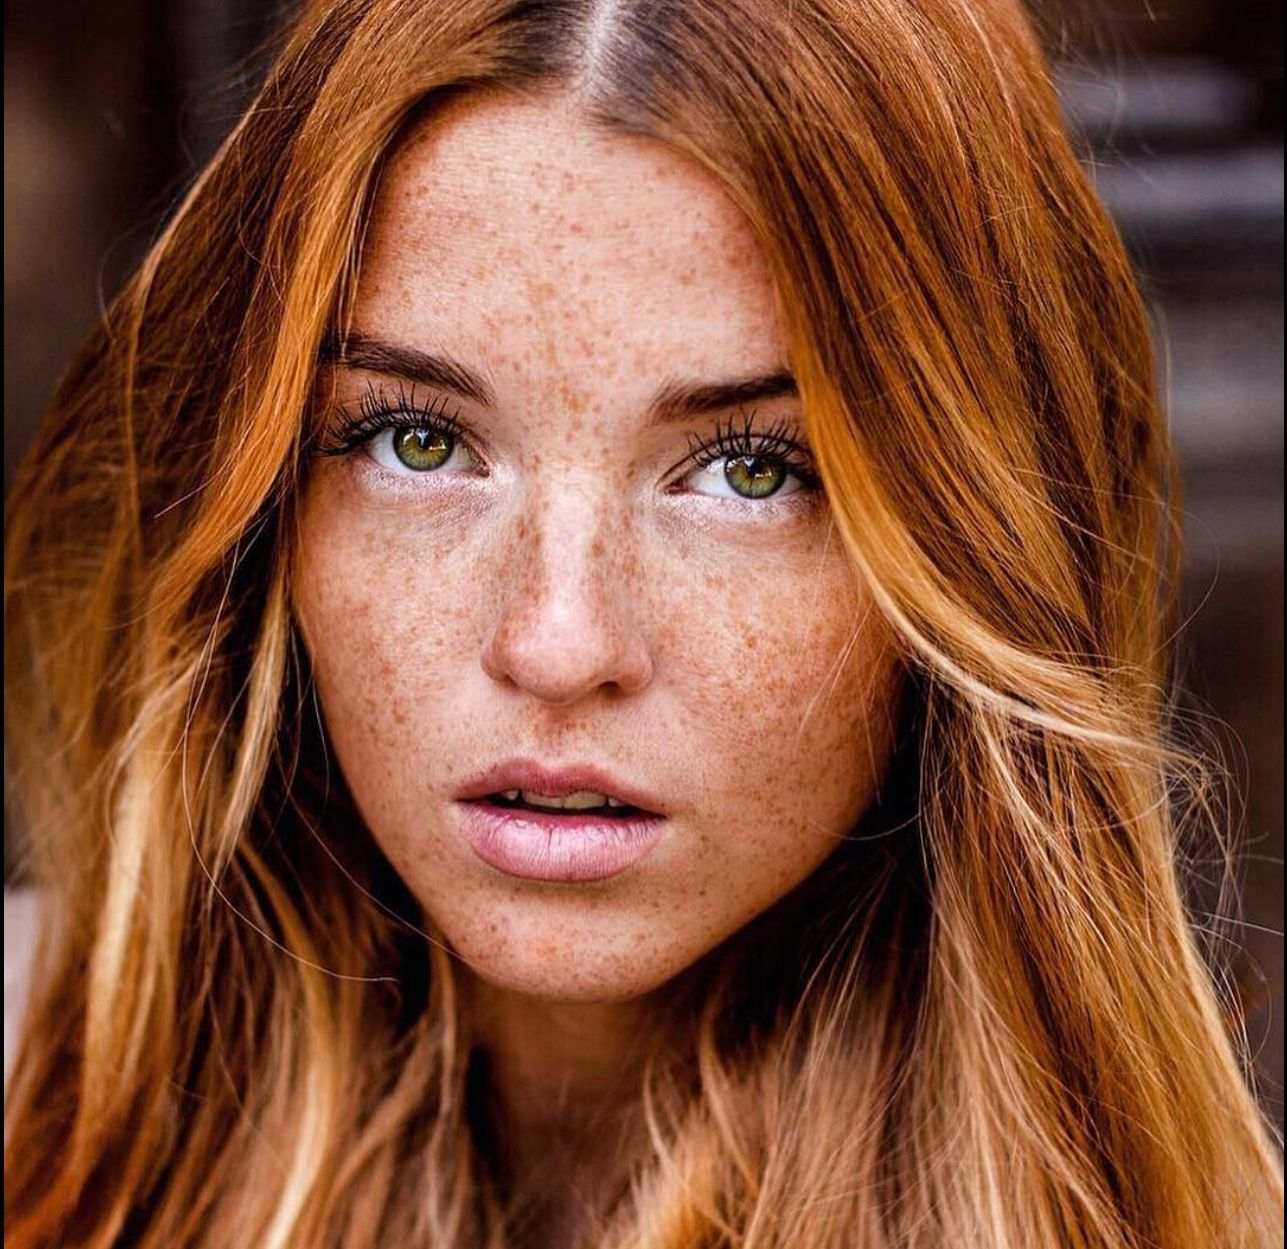 Pin By Island Master On Freckles Gingers Red Beautiful Red Hair